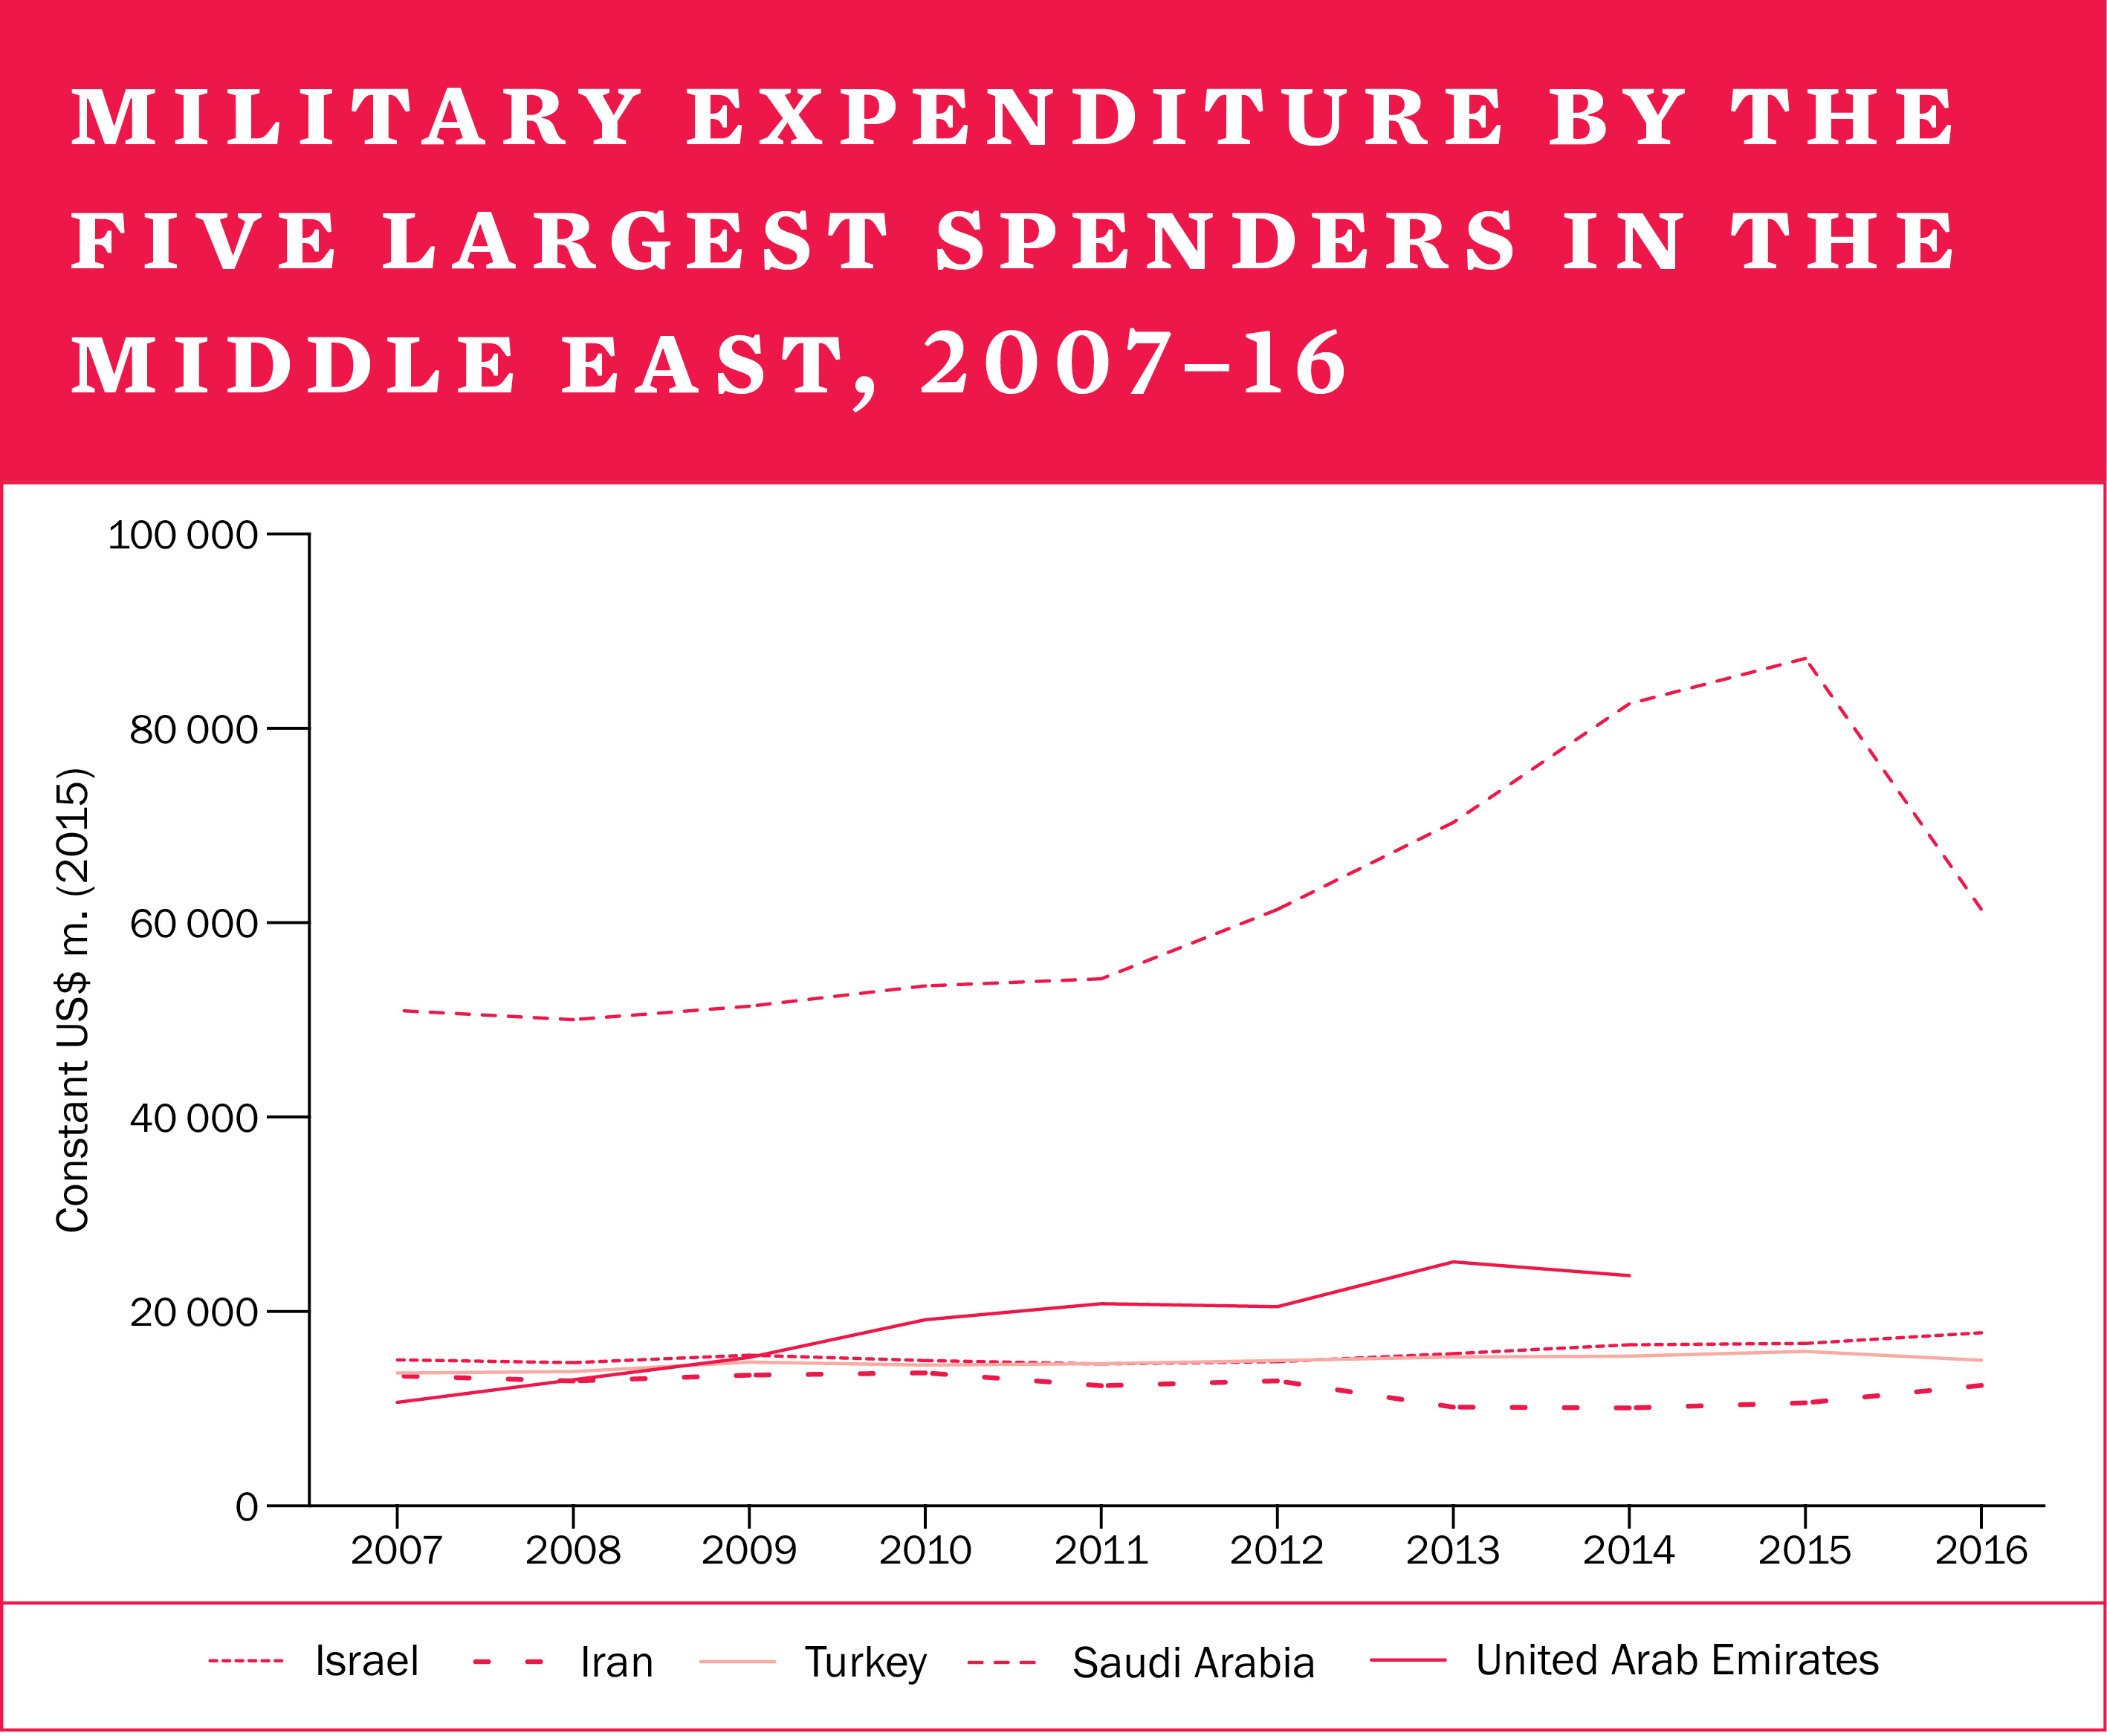 Military expenditure by the five largest spenders in the Middle East, 2007-16